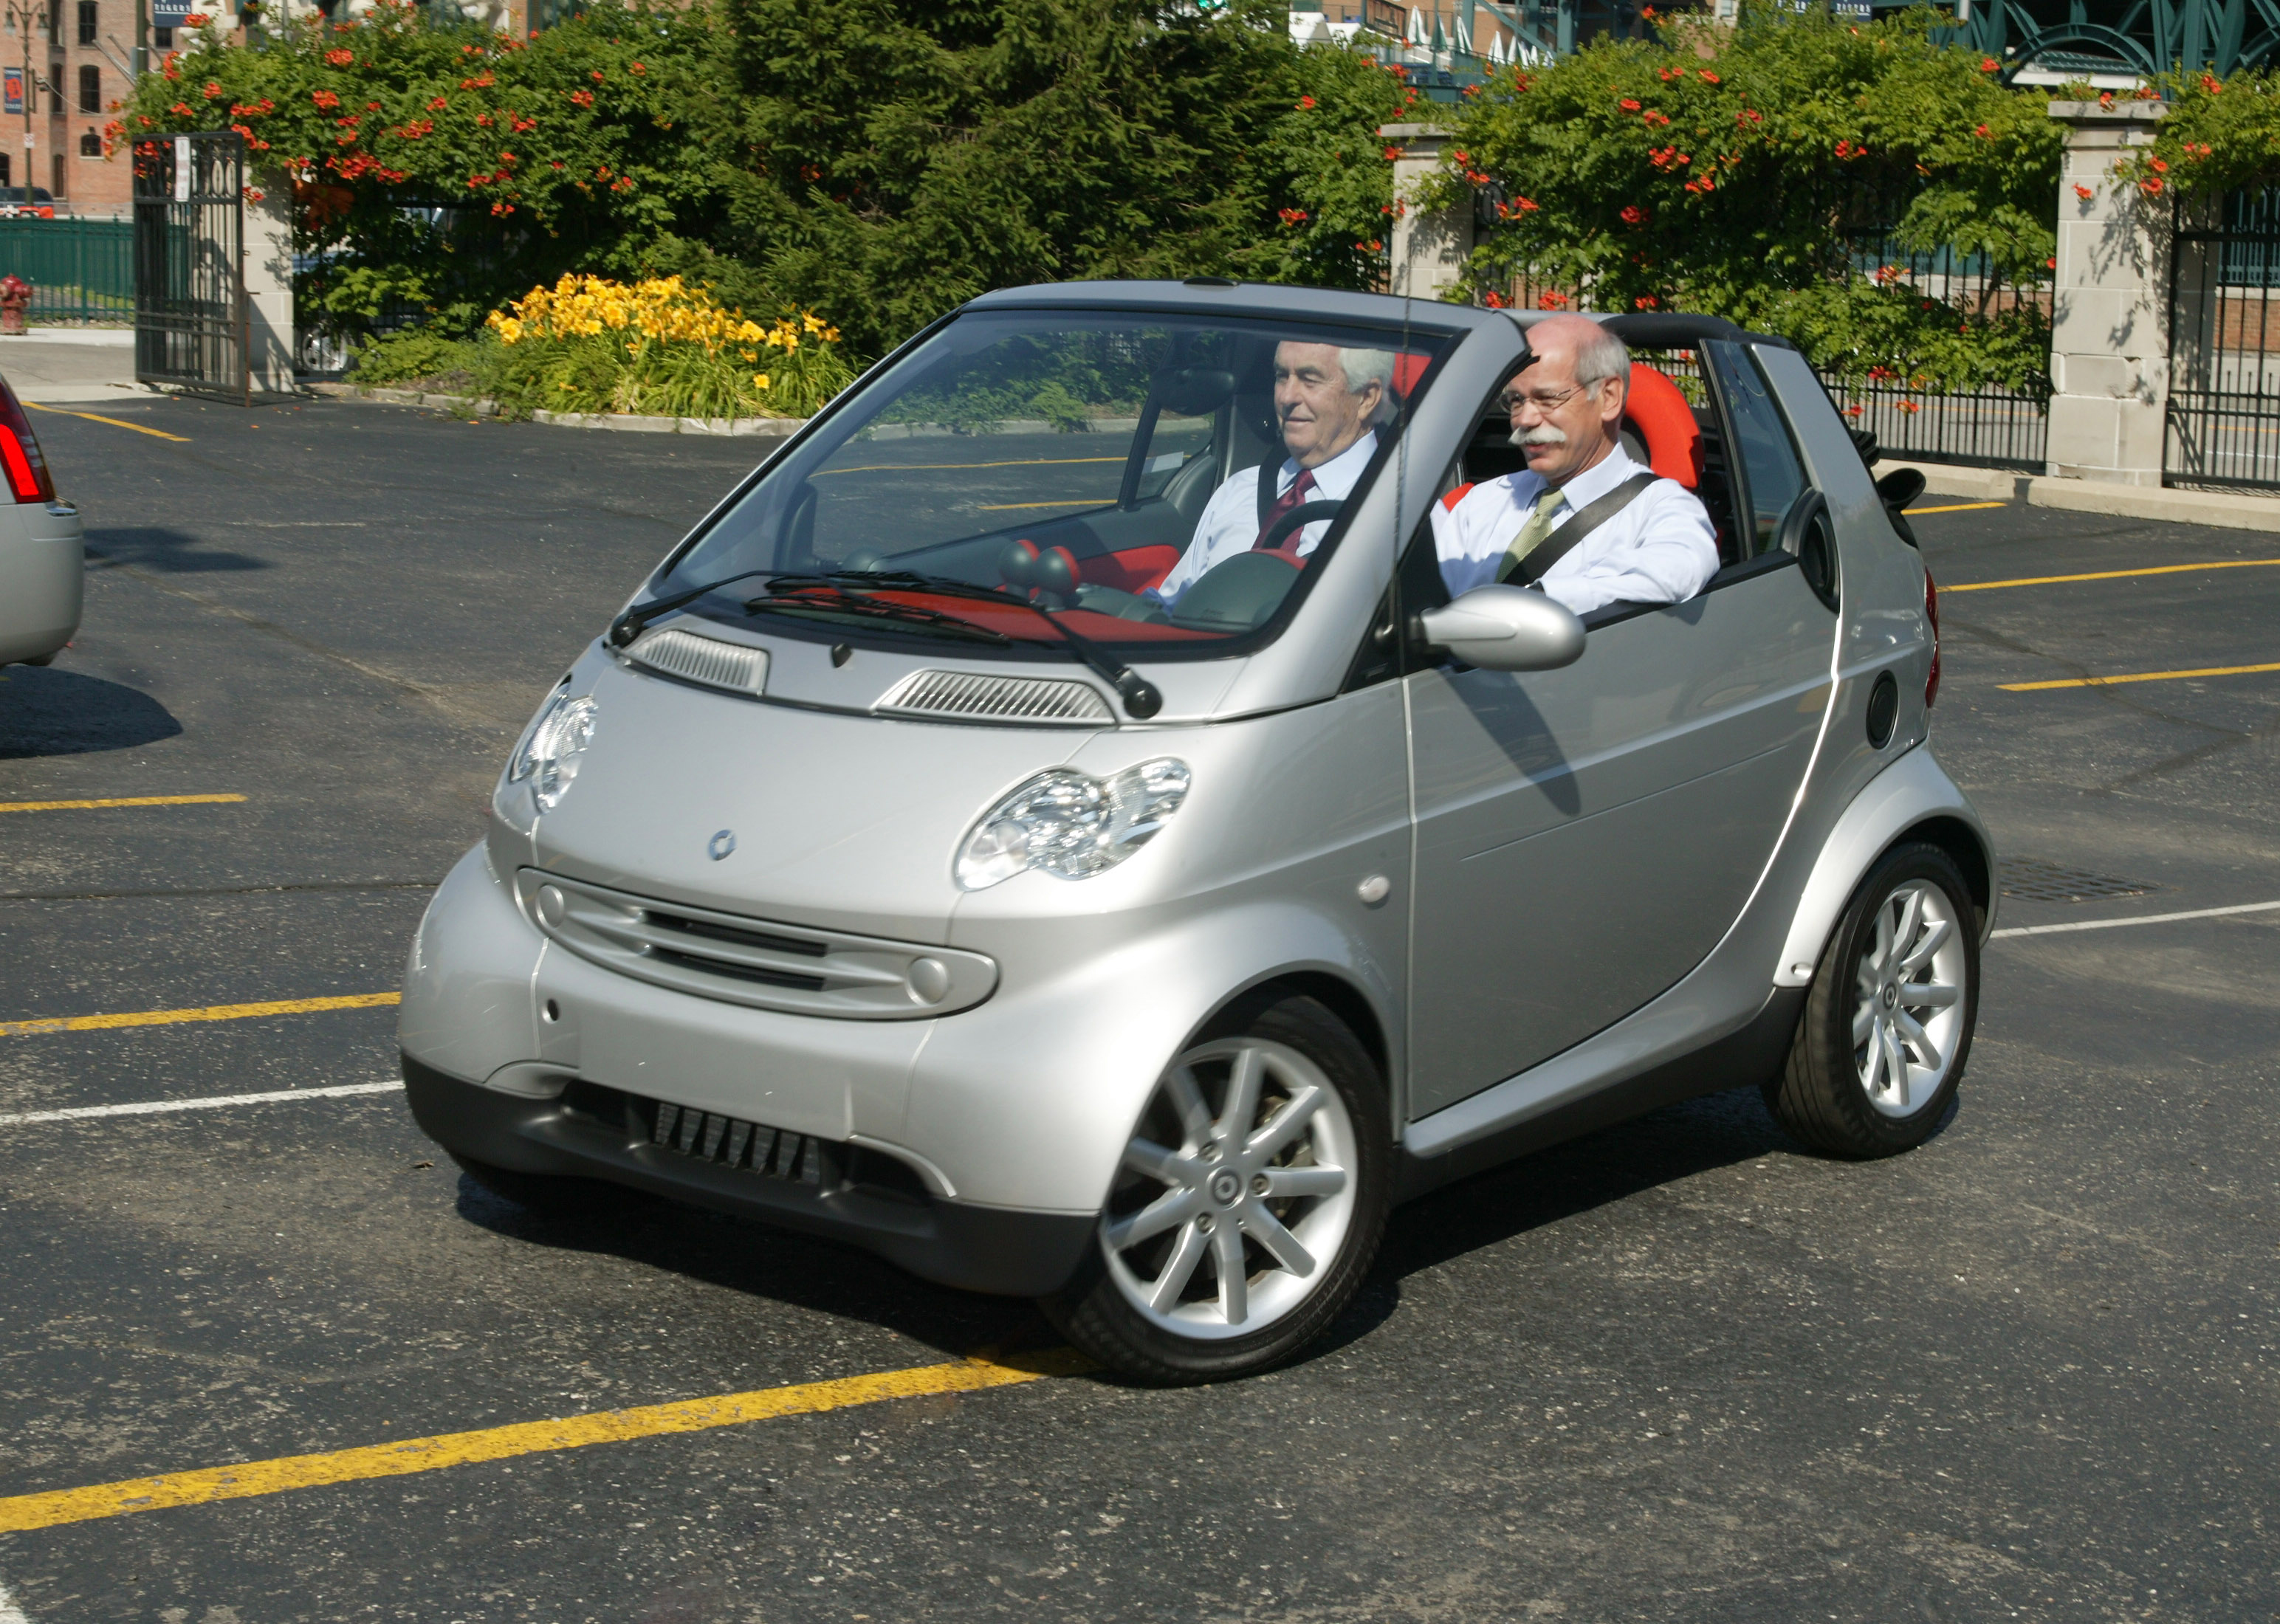 Used Cars Under 15000 >> smart USA Announces Pricing of smart fortwo Models